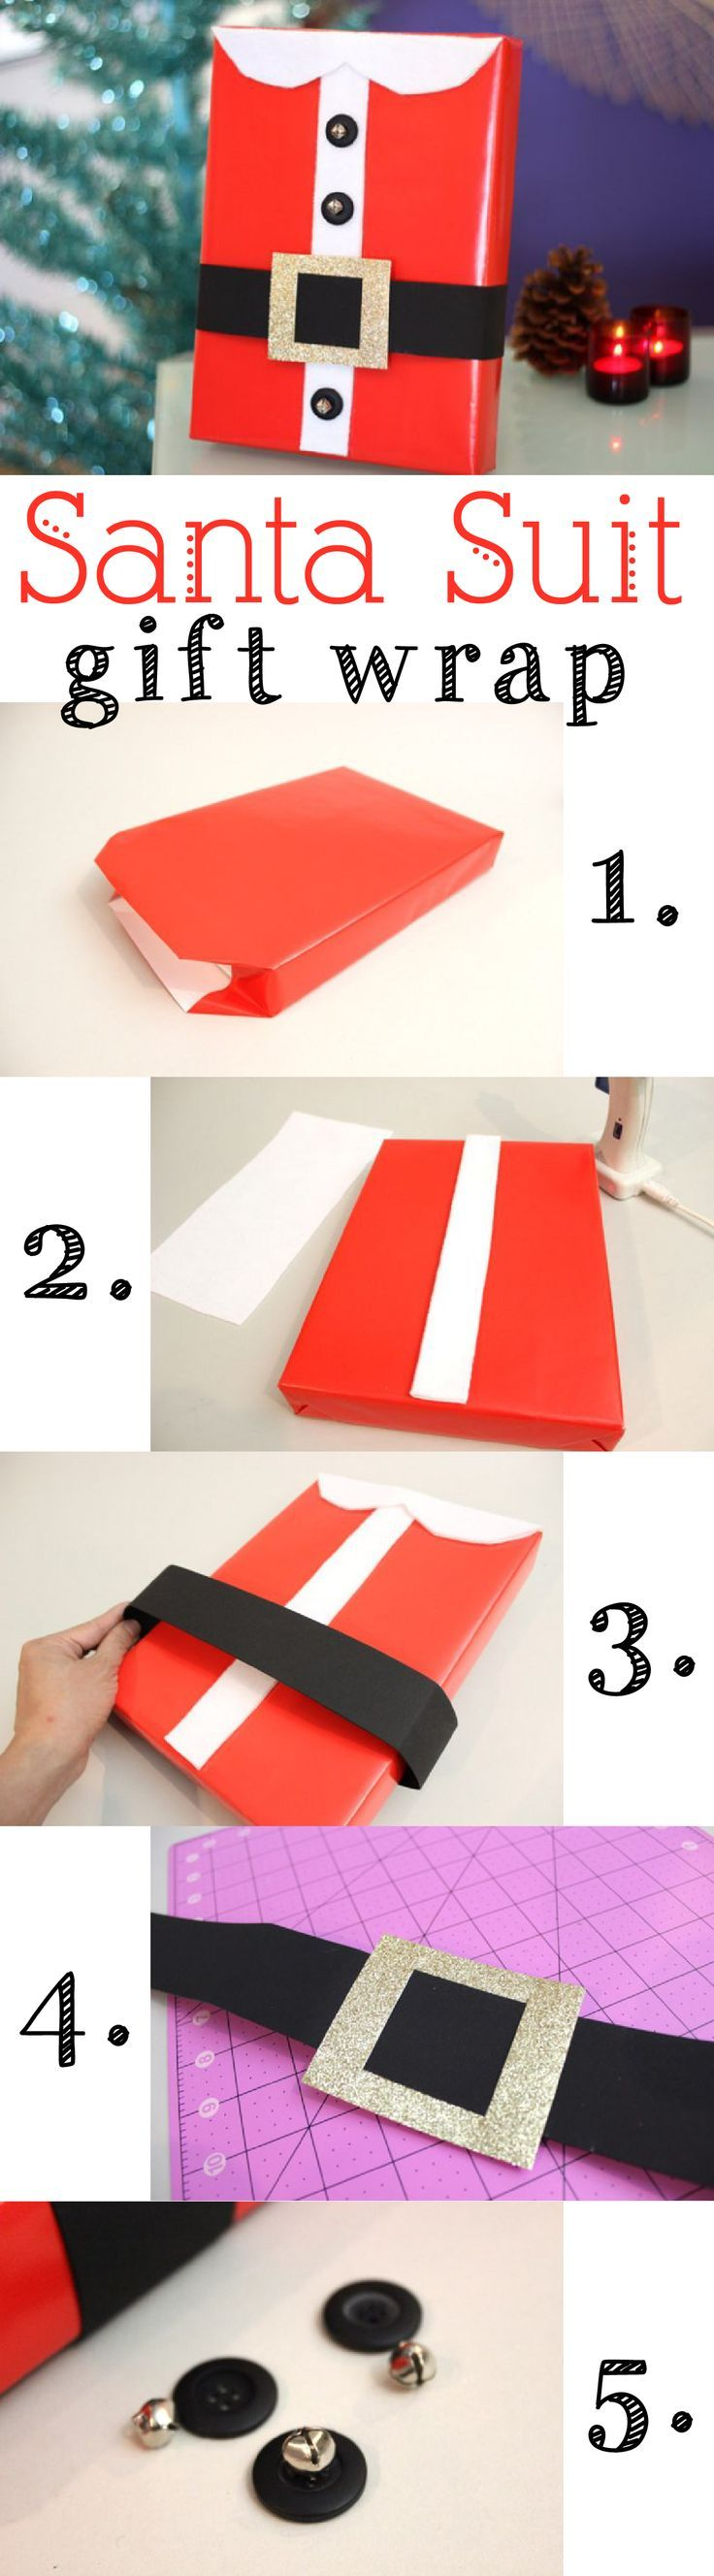 A DIY gift wrap idea that puts the ho-ho-ho in the holidays! A Santa Suit gift wrap, complete with collar and belt. It just may be the best-dressed gift under the tree this season. How-to tutorial: www.ehow.com/...